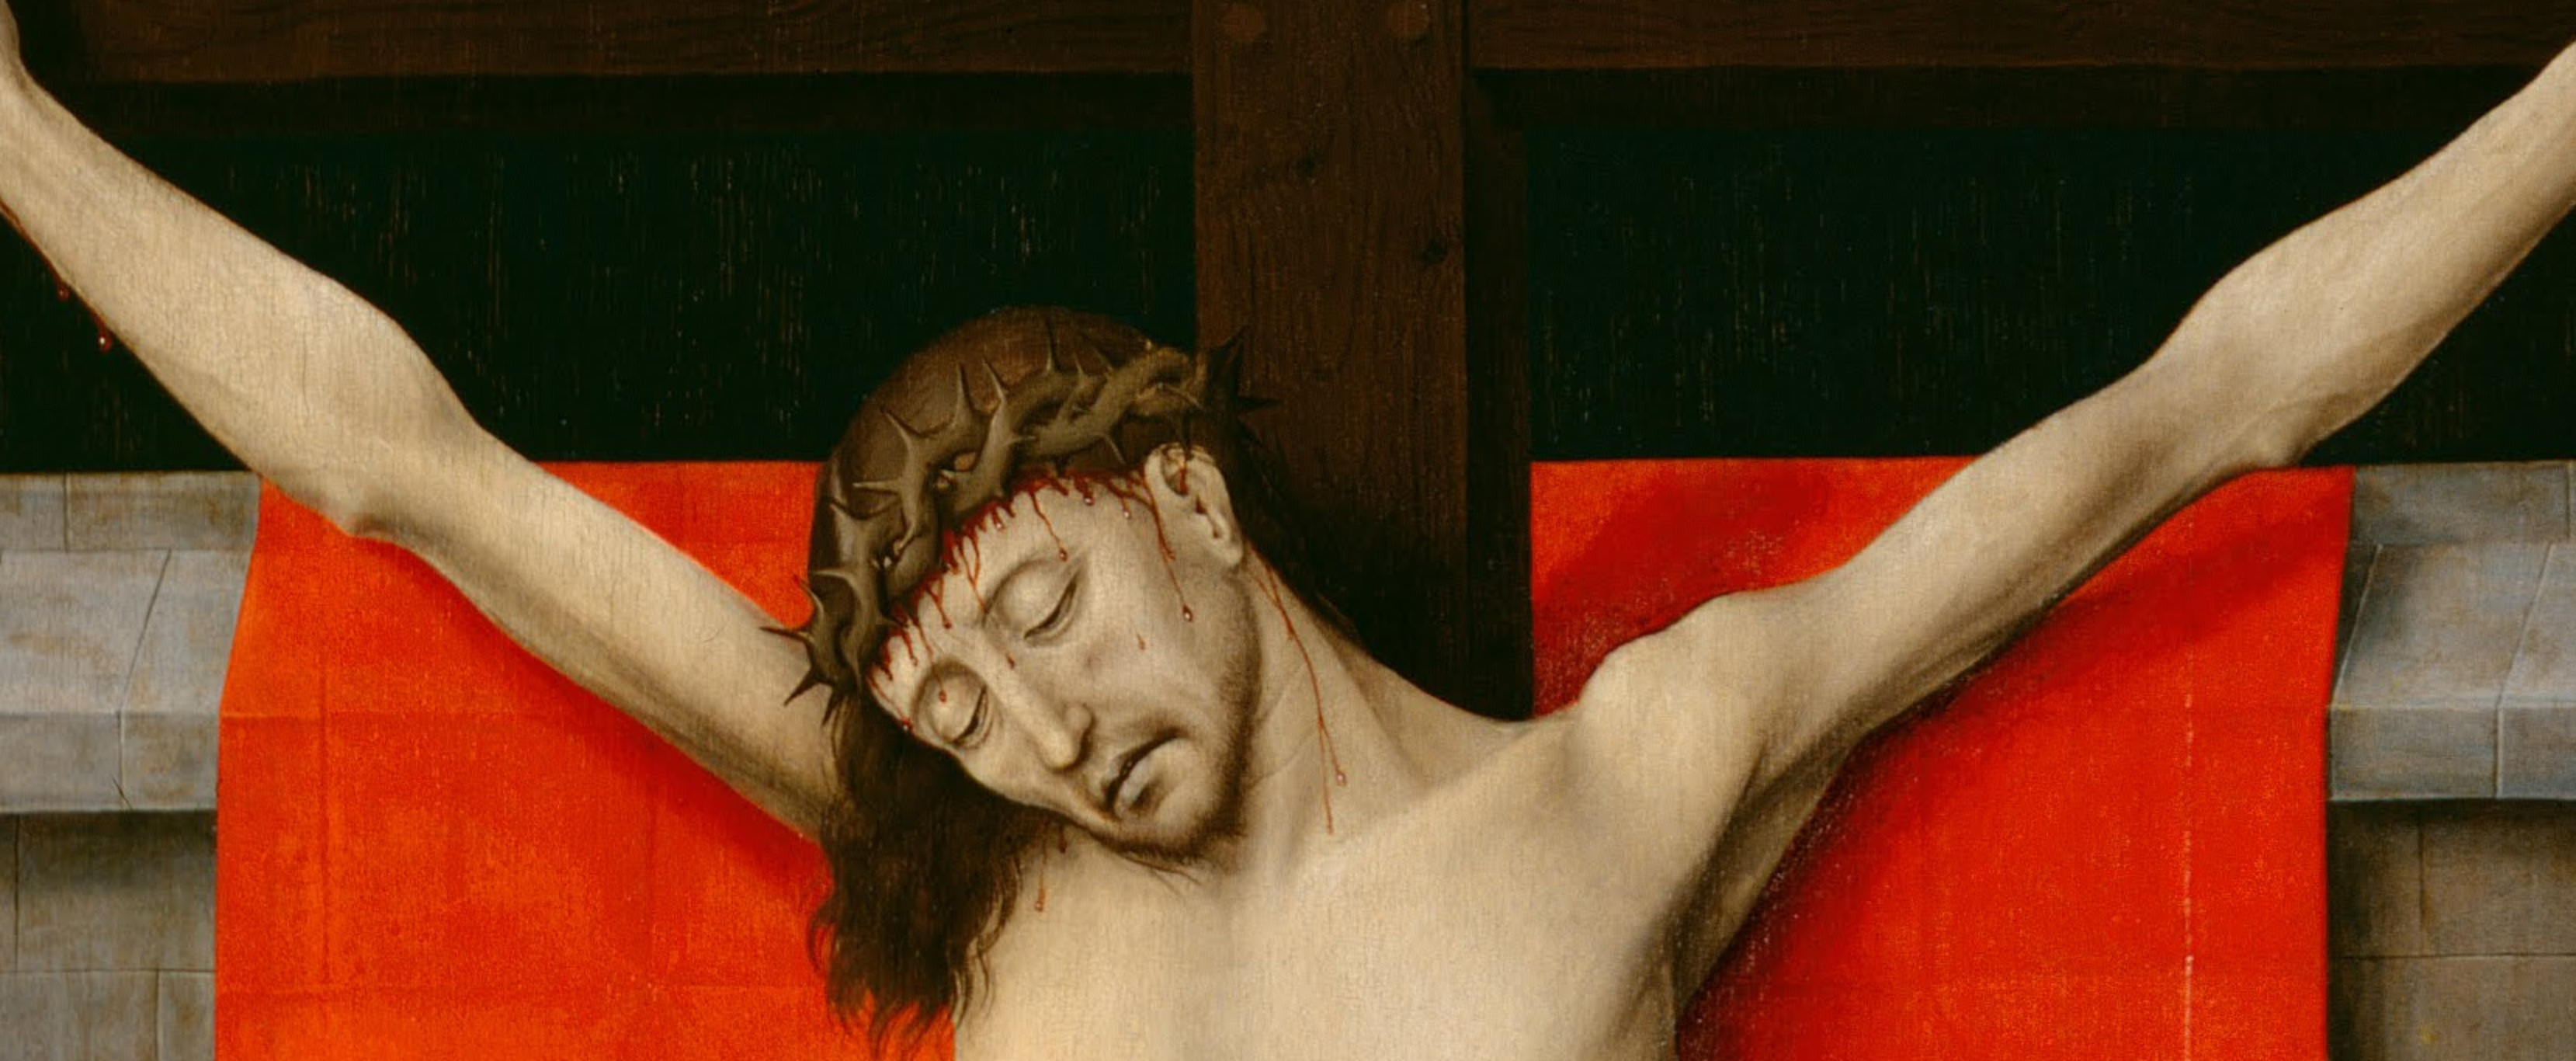 Rogier_van_der_Weyden,_Netherlandish_(active_Tournai_and_Brussels)_-_The_Crucifixion,_with_the_Virgin_and_Saint_John_the_Evangelist_Mourning_-_Google_Art_Project_2